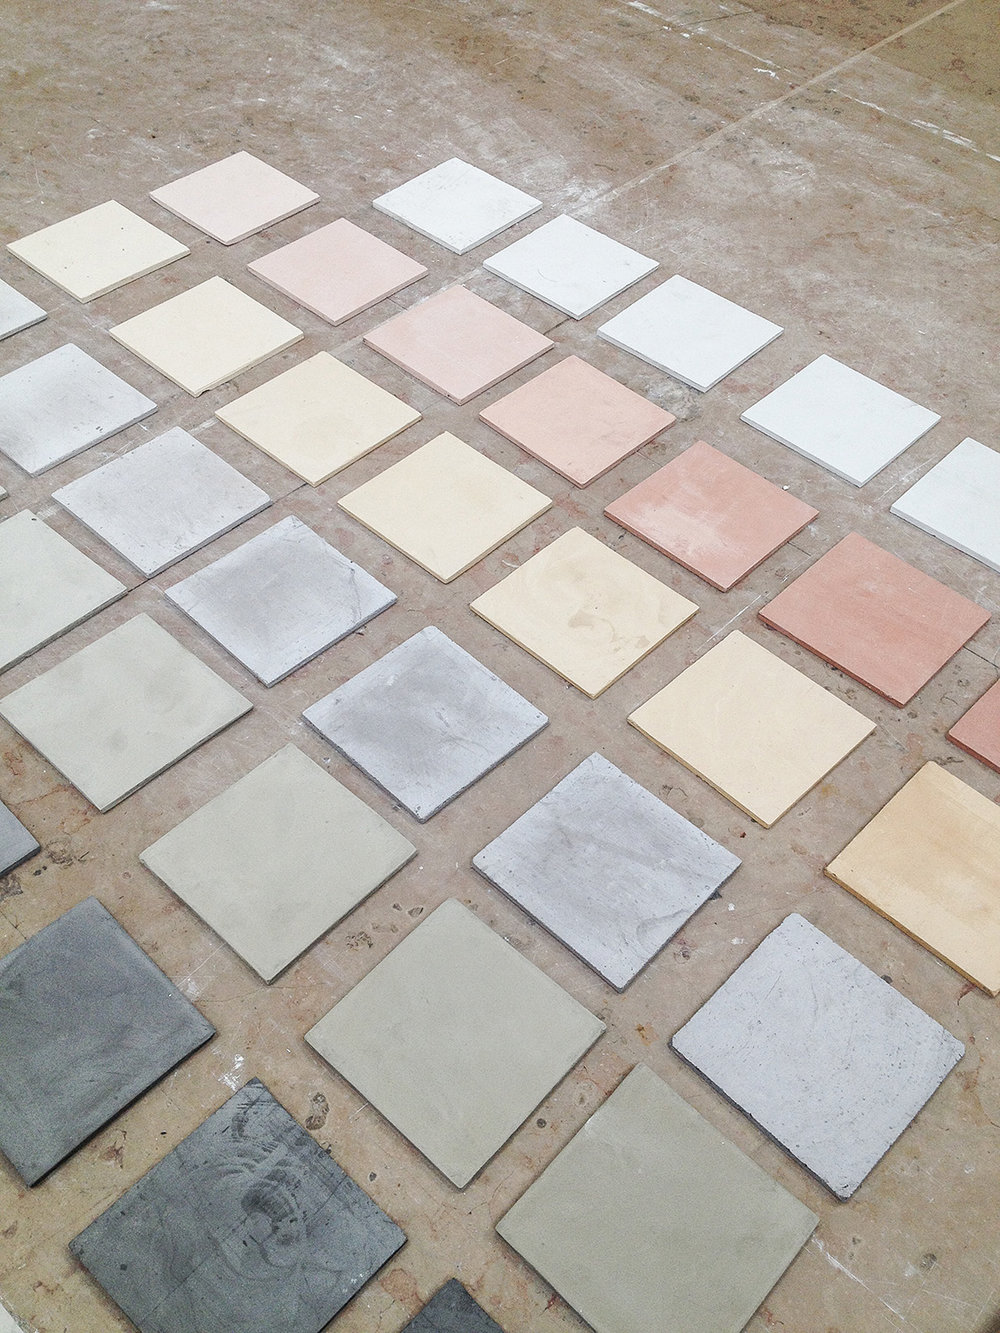 Dyed in the mass plaster: selection of colors.